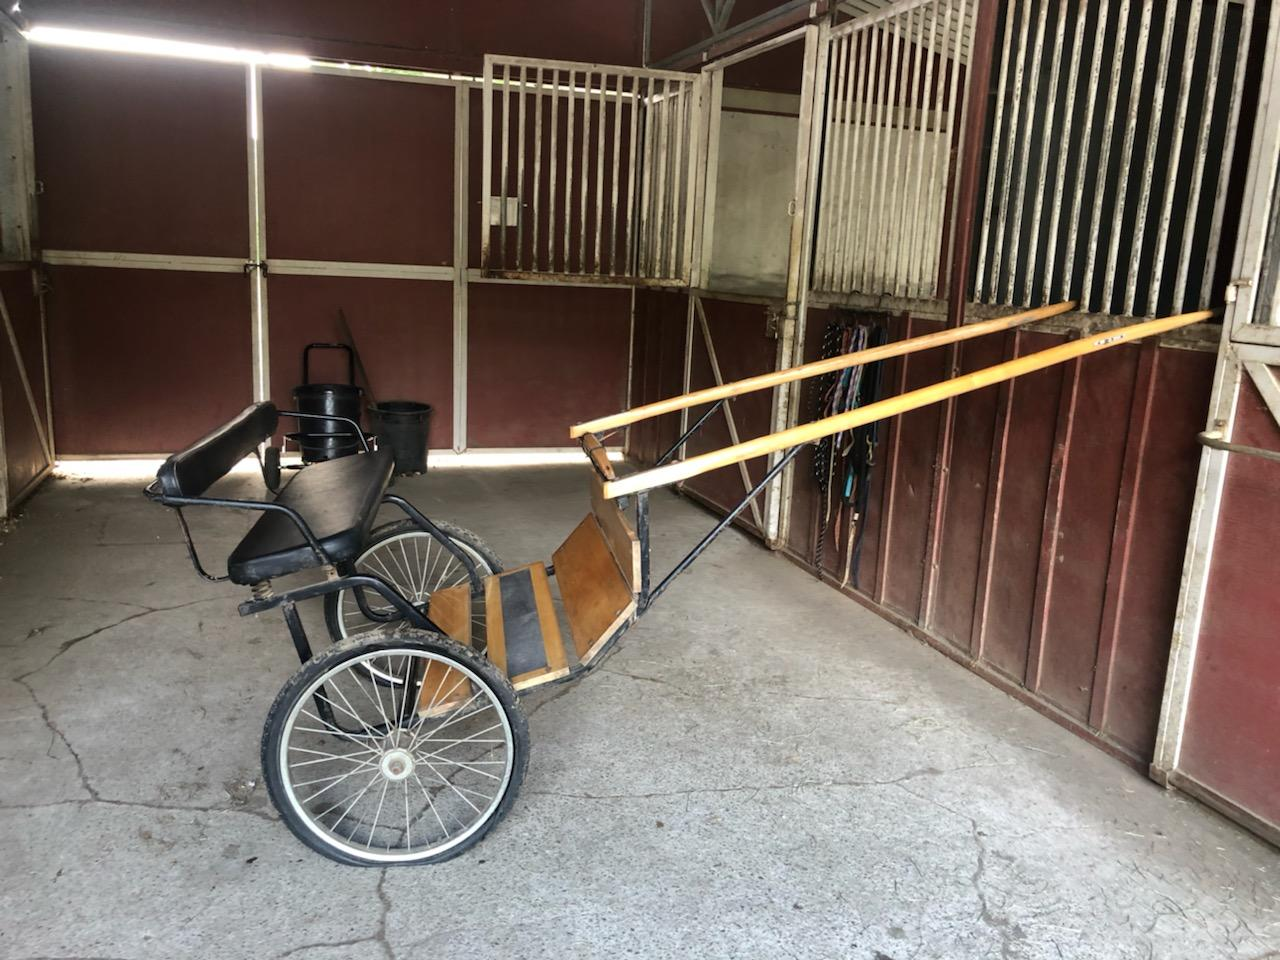 Tack & Supplies: Driving Equipment For Sale-Classified Ads-Bay Area